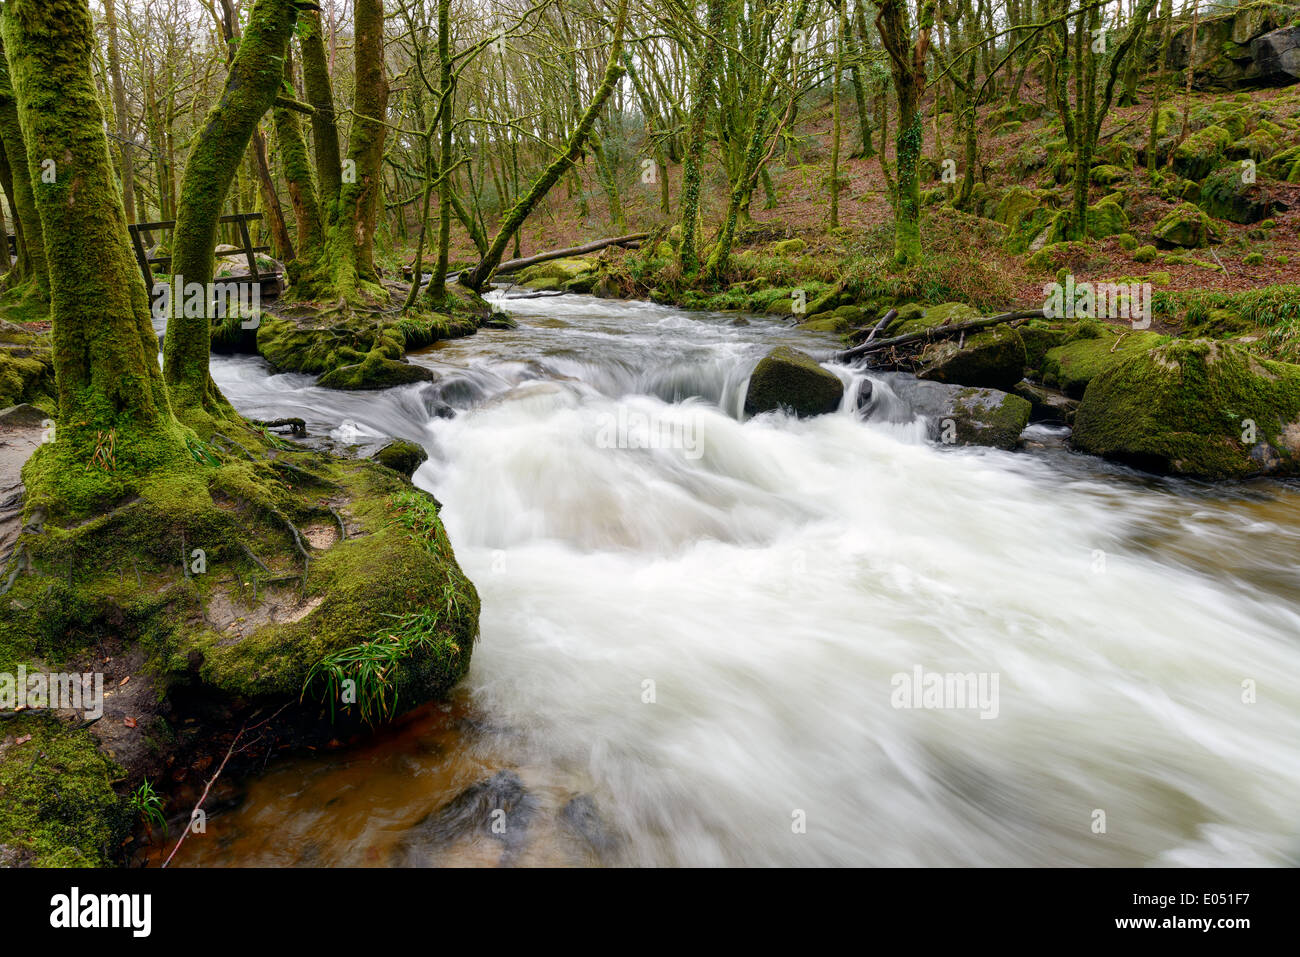 Golitha Falls in Cornwall - Stock Image